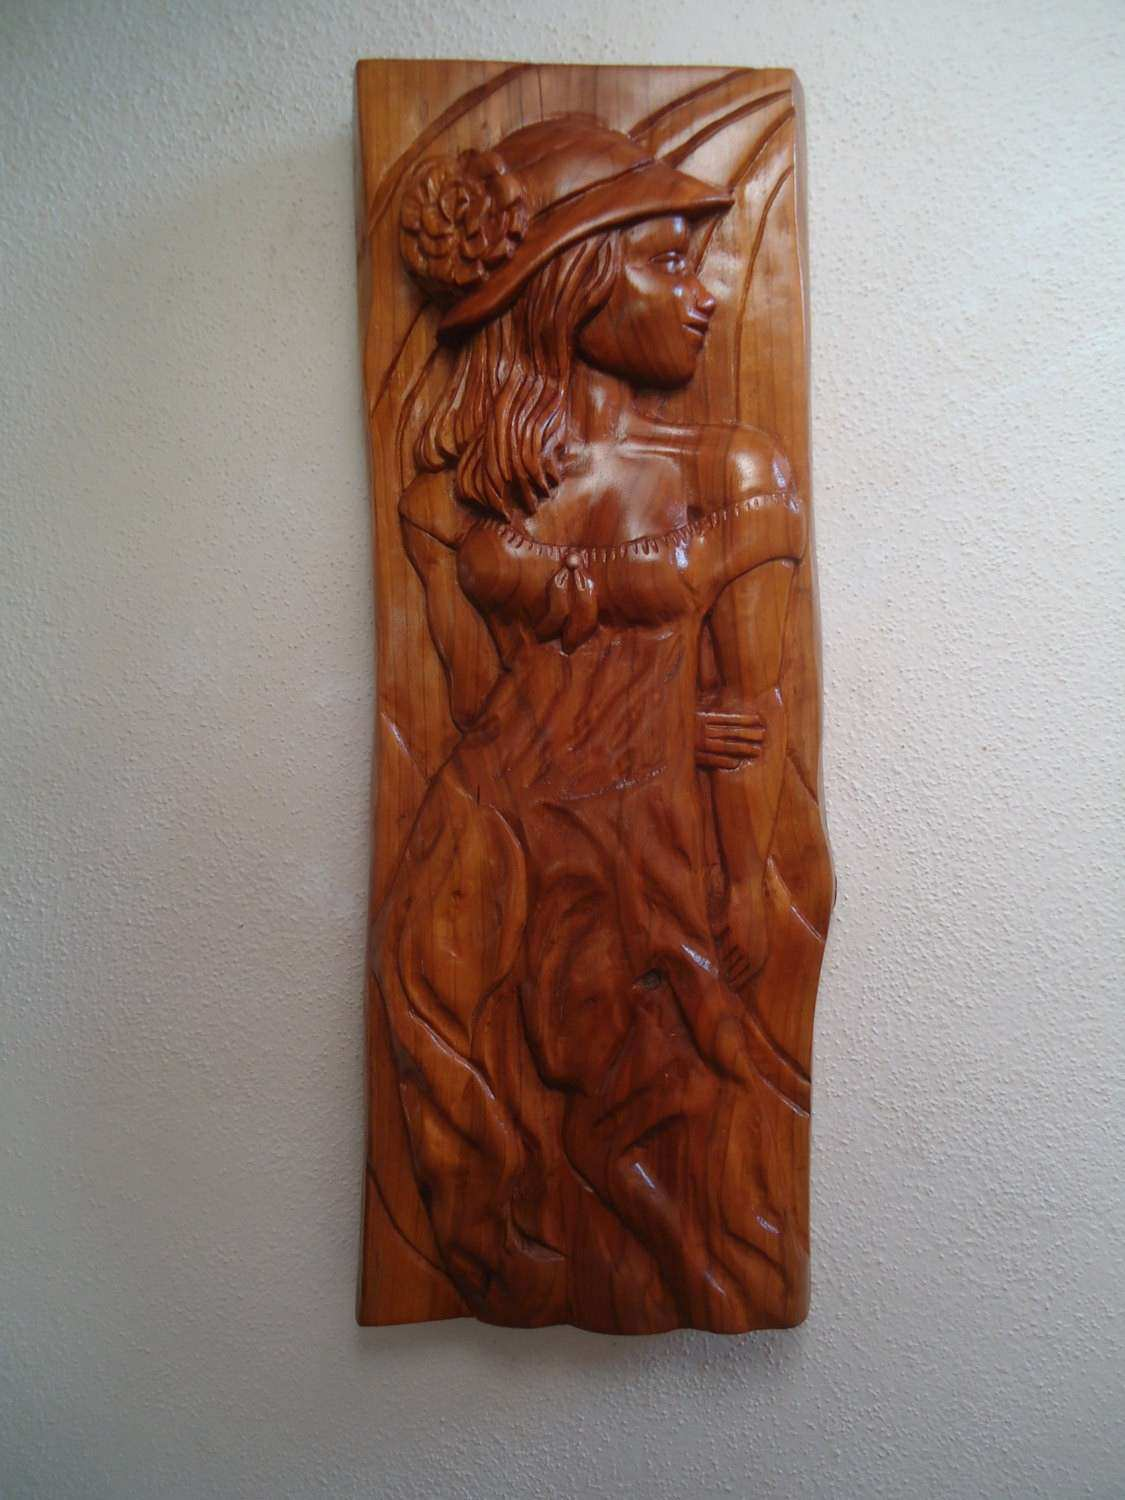 Wood carving sculpture Wood wall art Wood carving